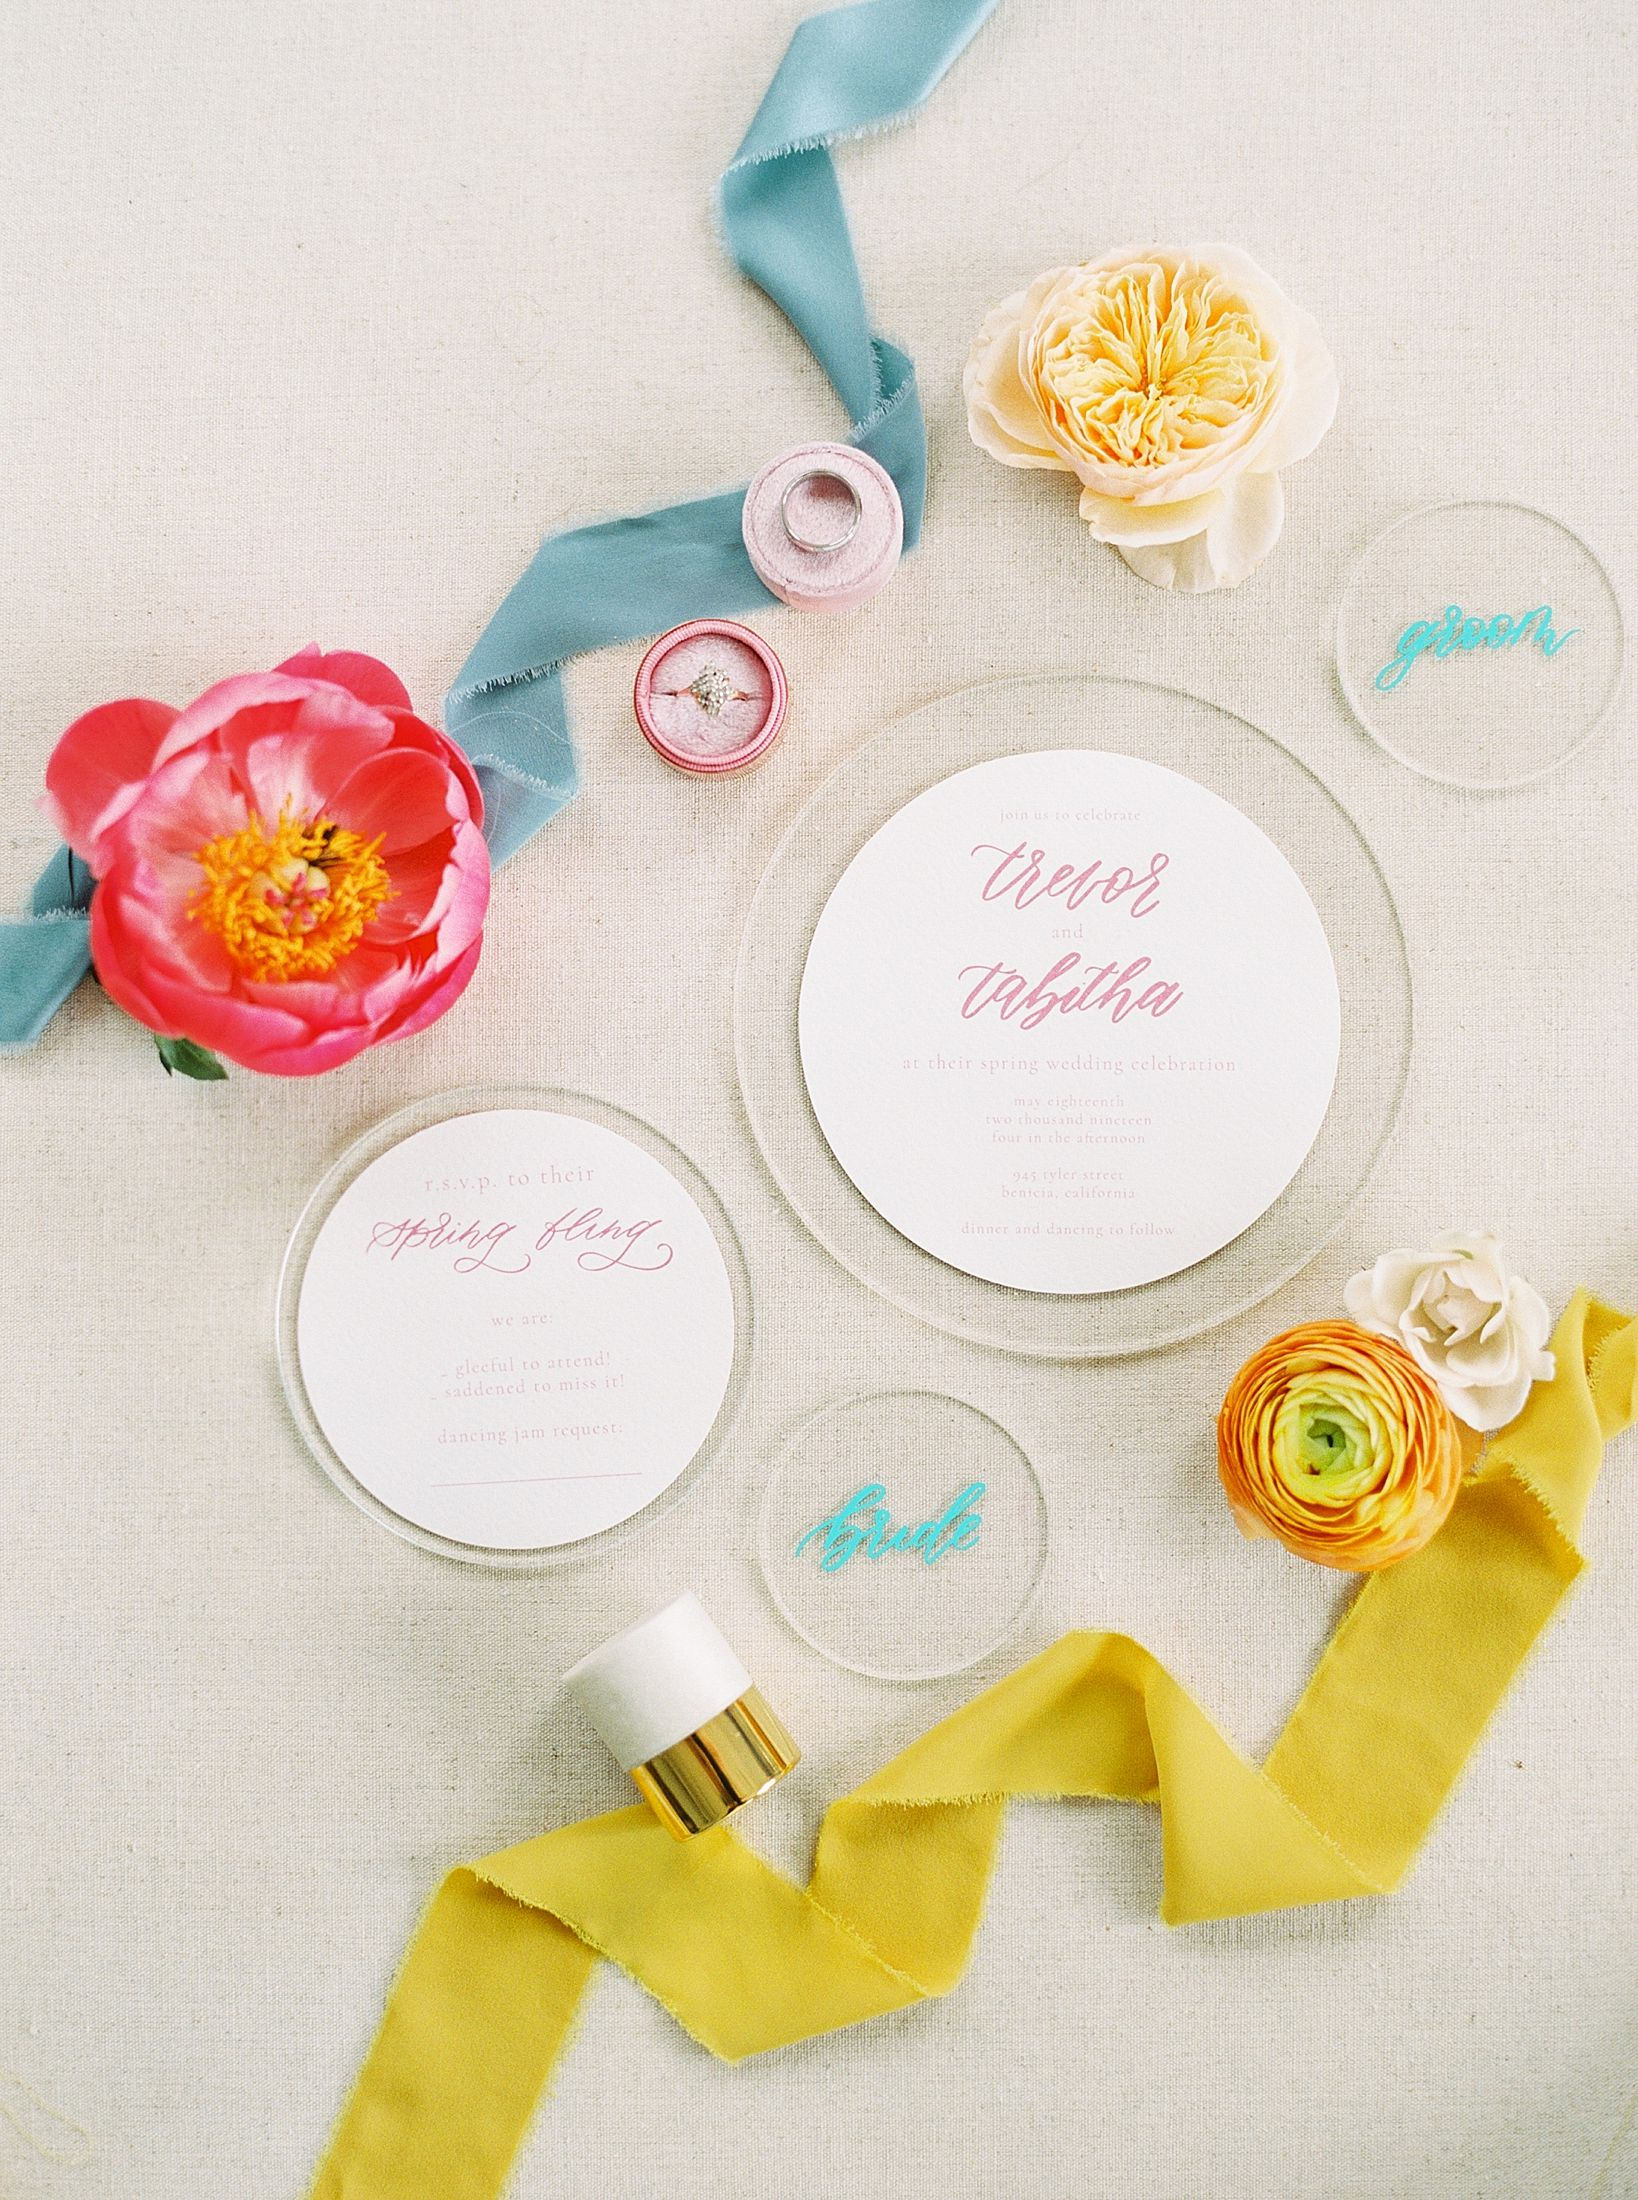 Bay Area Spring Wedding Inspiration - Ashley Baumgartner - Inspired By This - Party Crush Studio and Lens of Lenox Videography - Bay Area Wedding Photography_0019.jpg